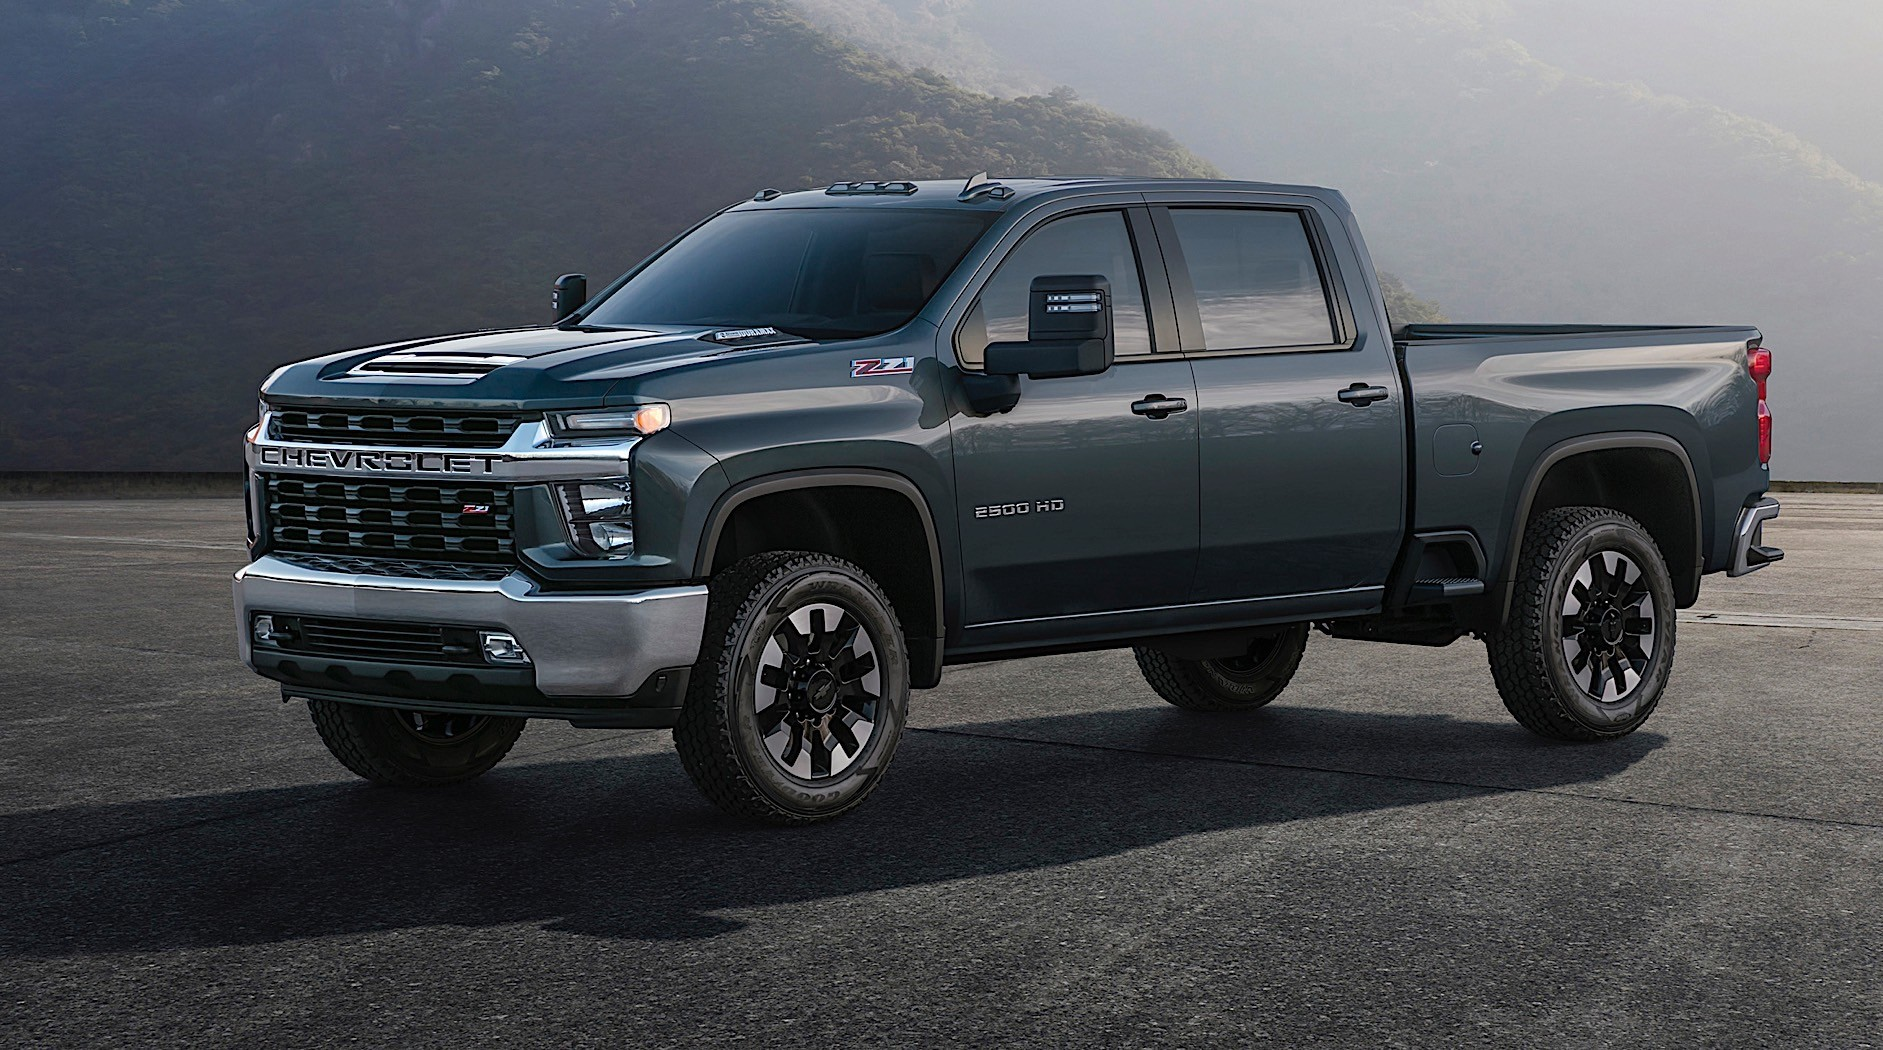 Lifted Dodge Dually For Sale >> 2020 Chevrolet Silverado HD Looks Bling-Bling In High Country Flavor - autoevolution